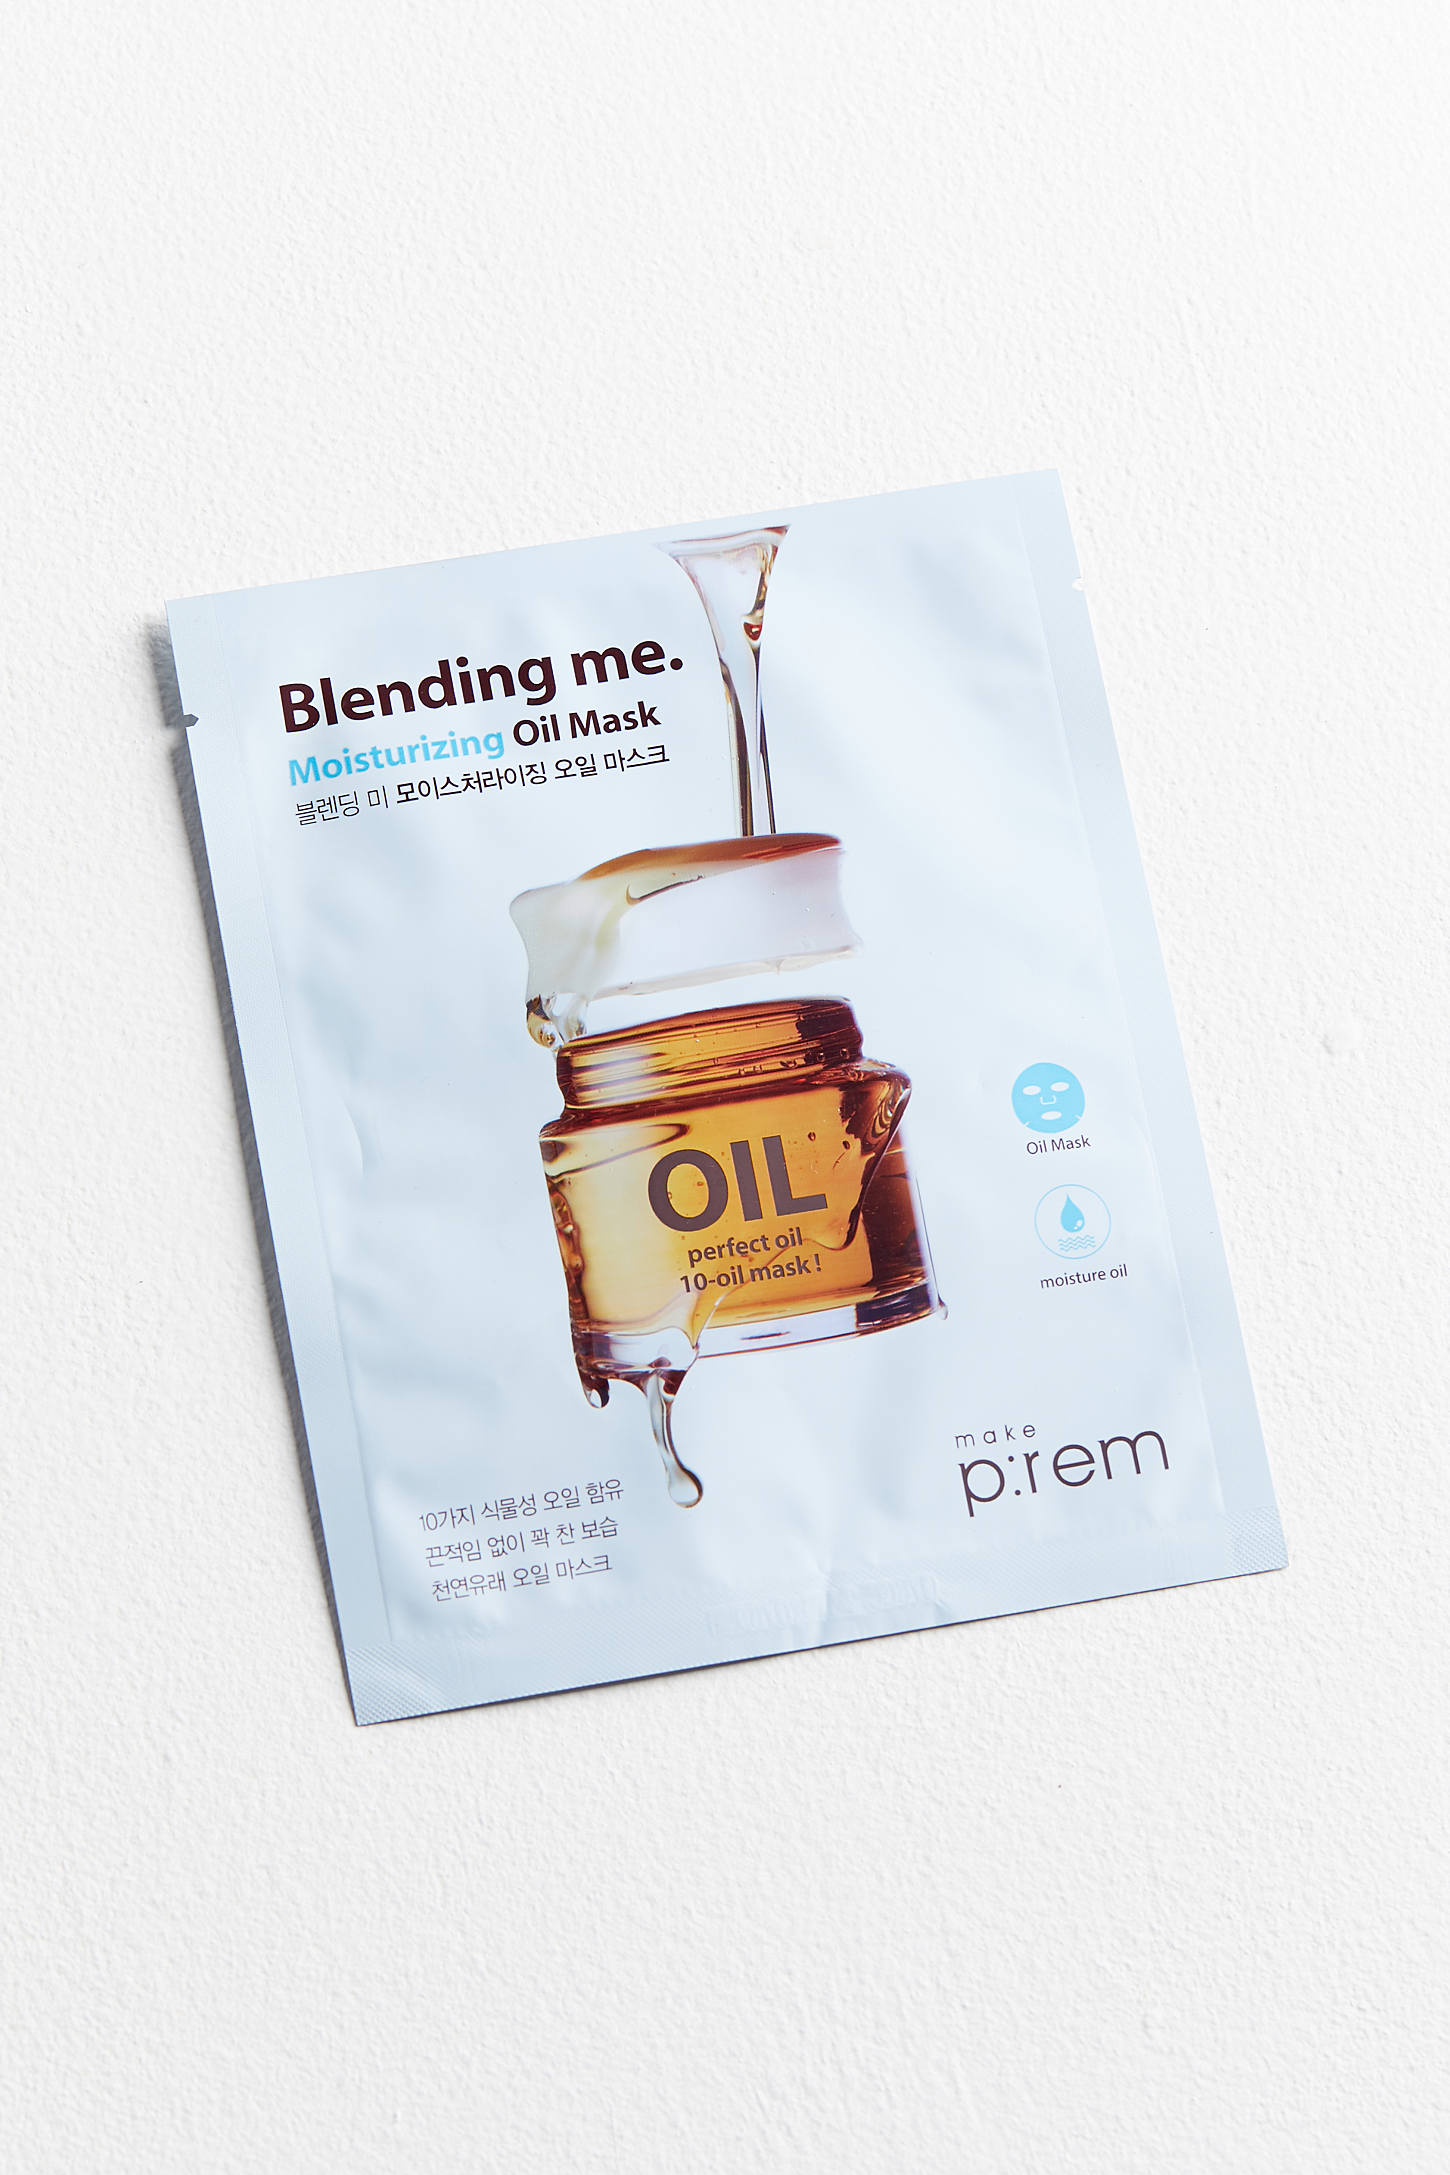 Make P:rem - Blending Me. Moisturizing Oil Sheet Mask